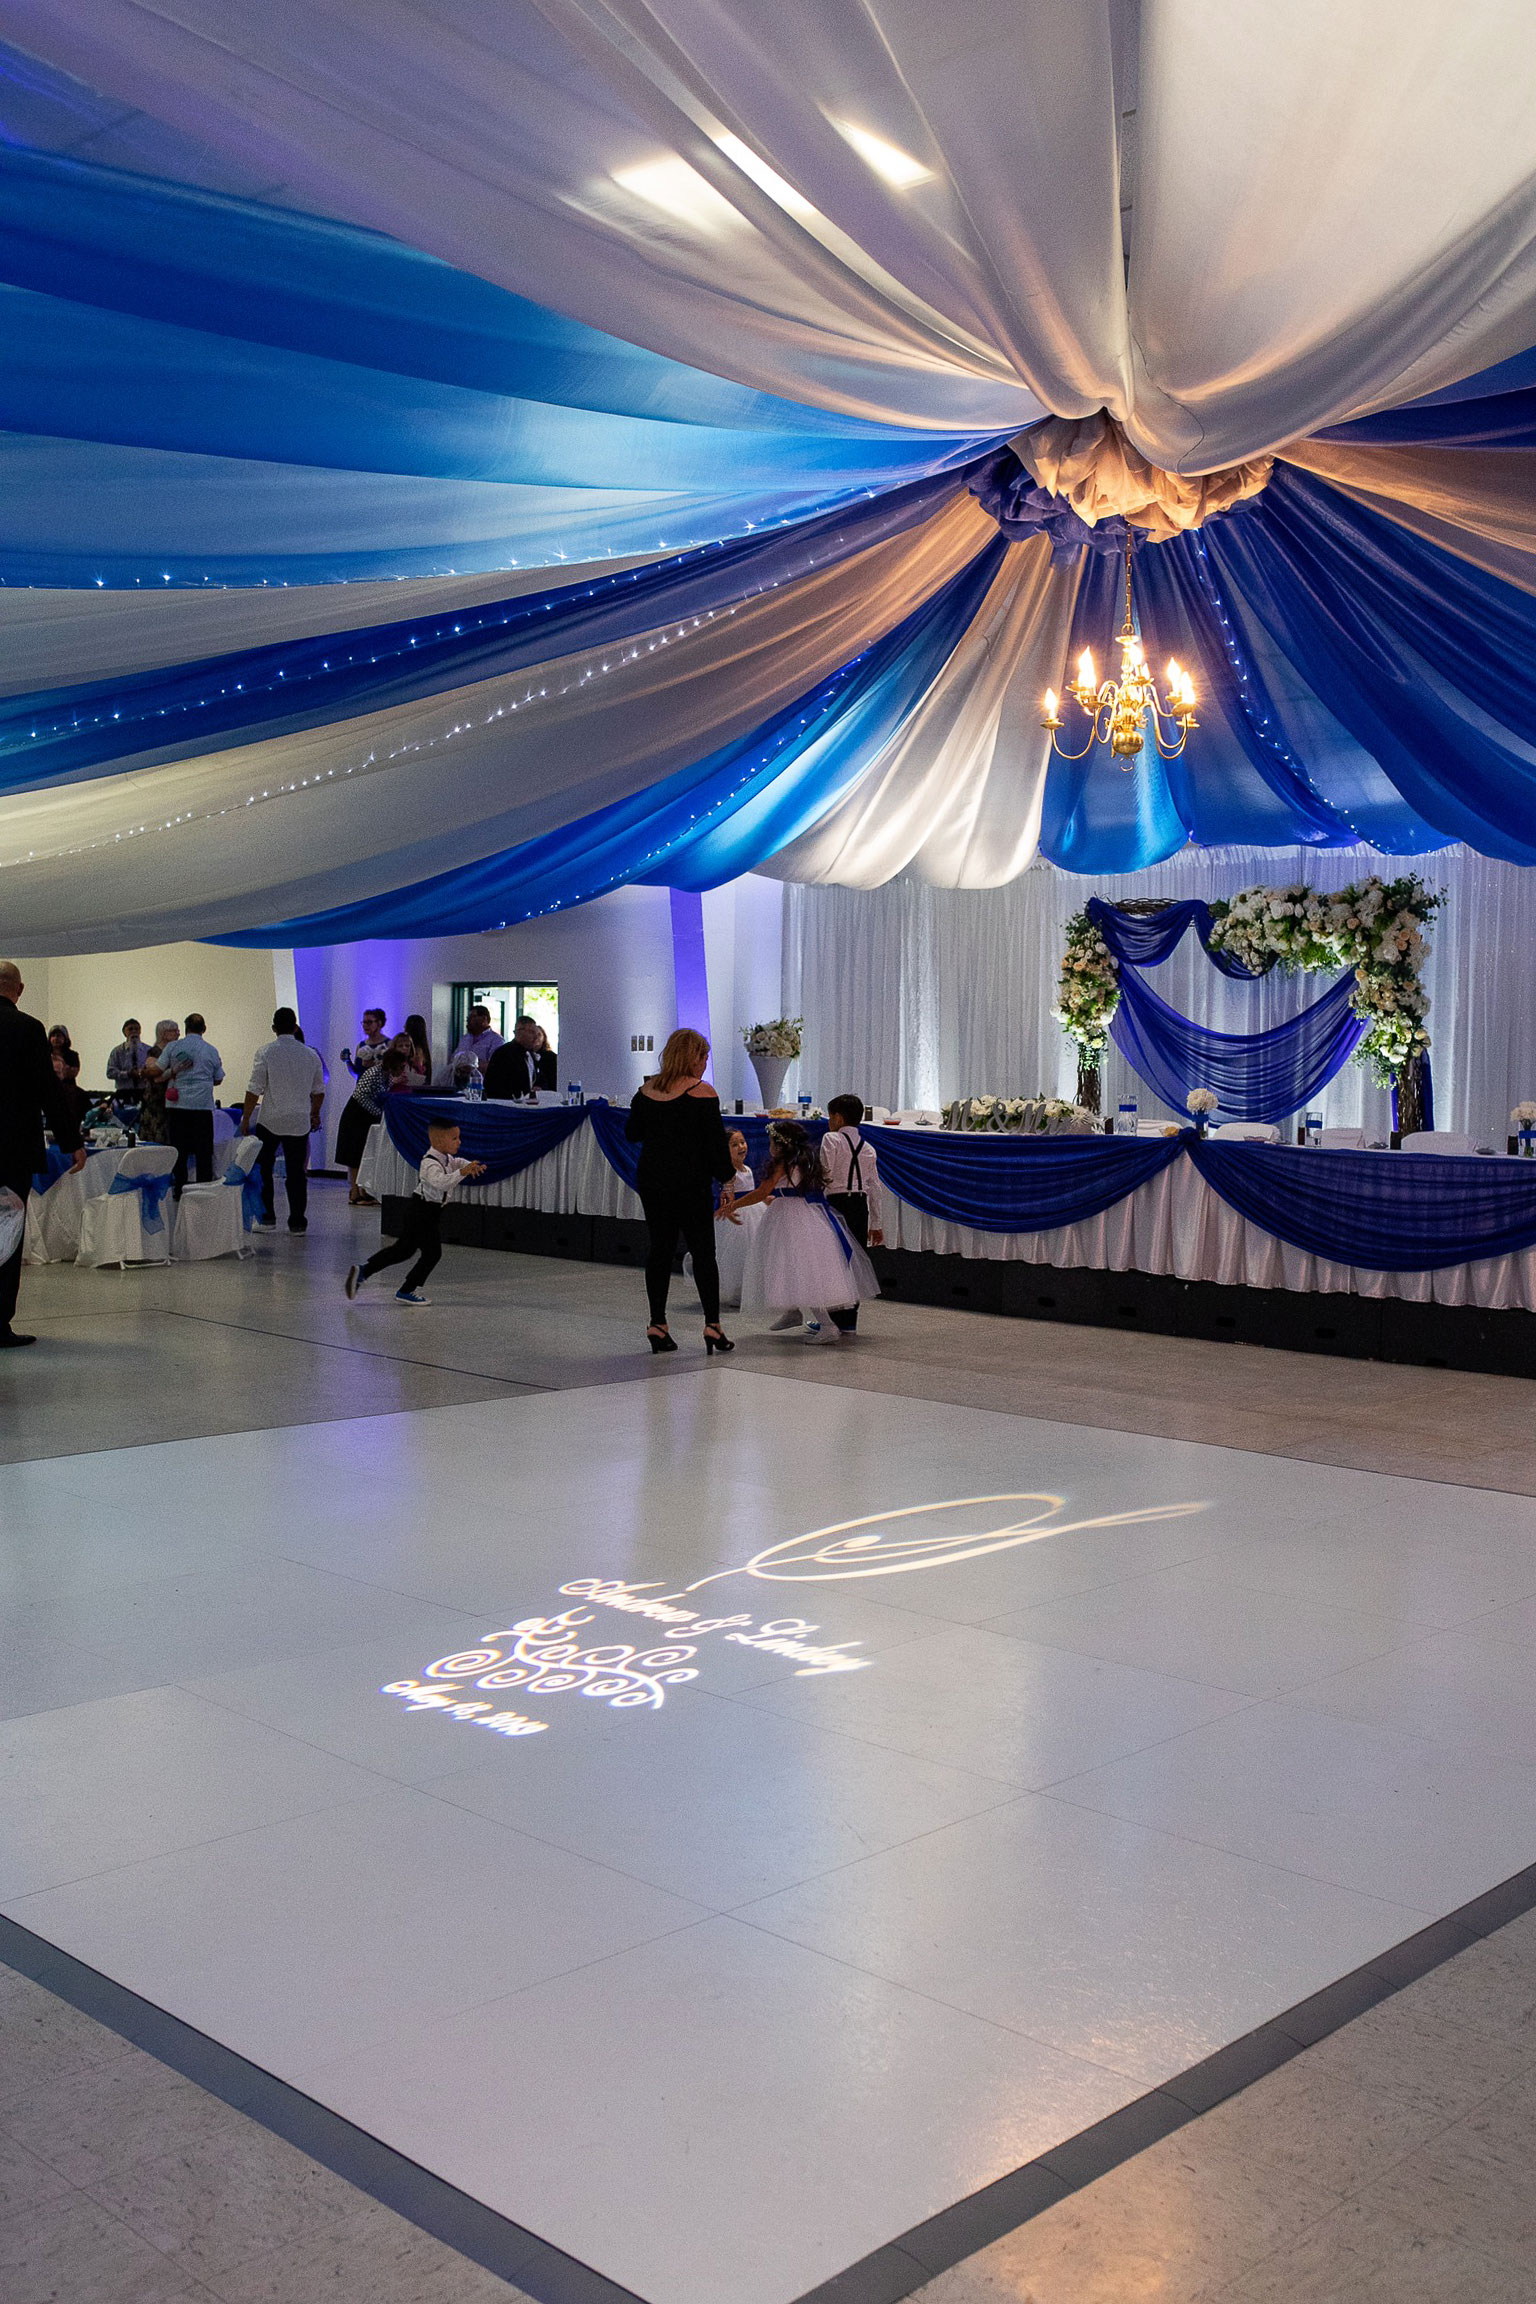 Slate White Plus wedding dance floor with projected design.